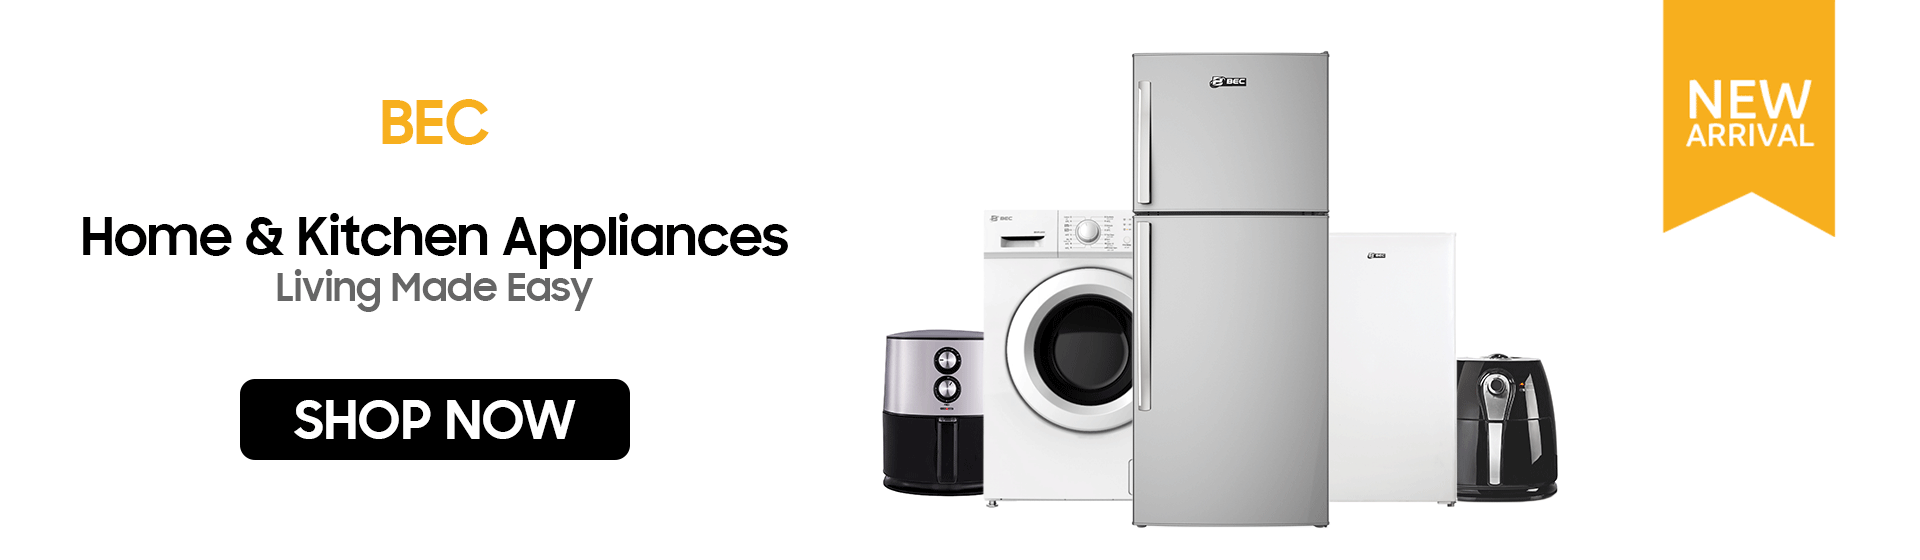 BEC Home & Kitchen Appliances